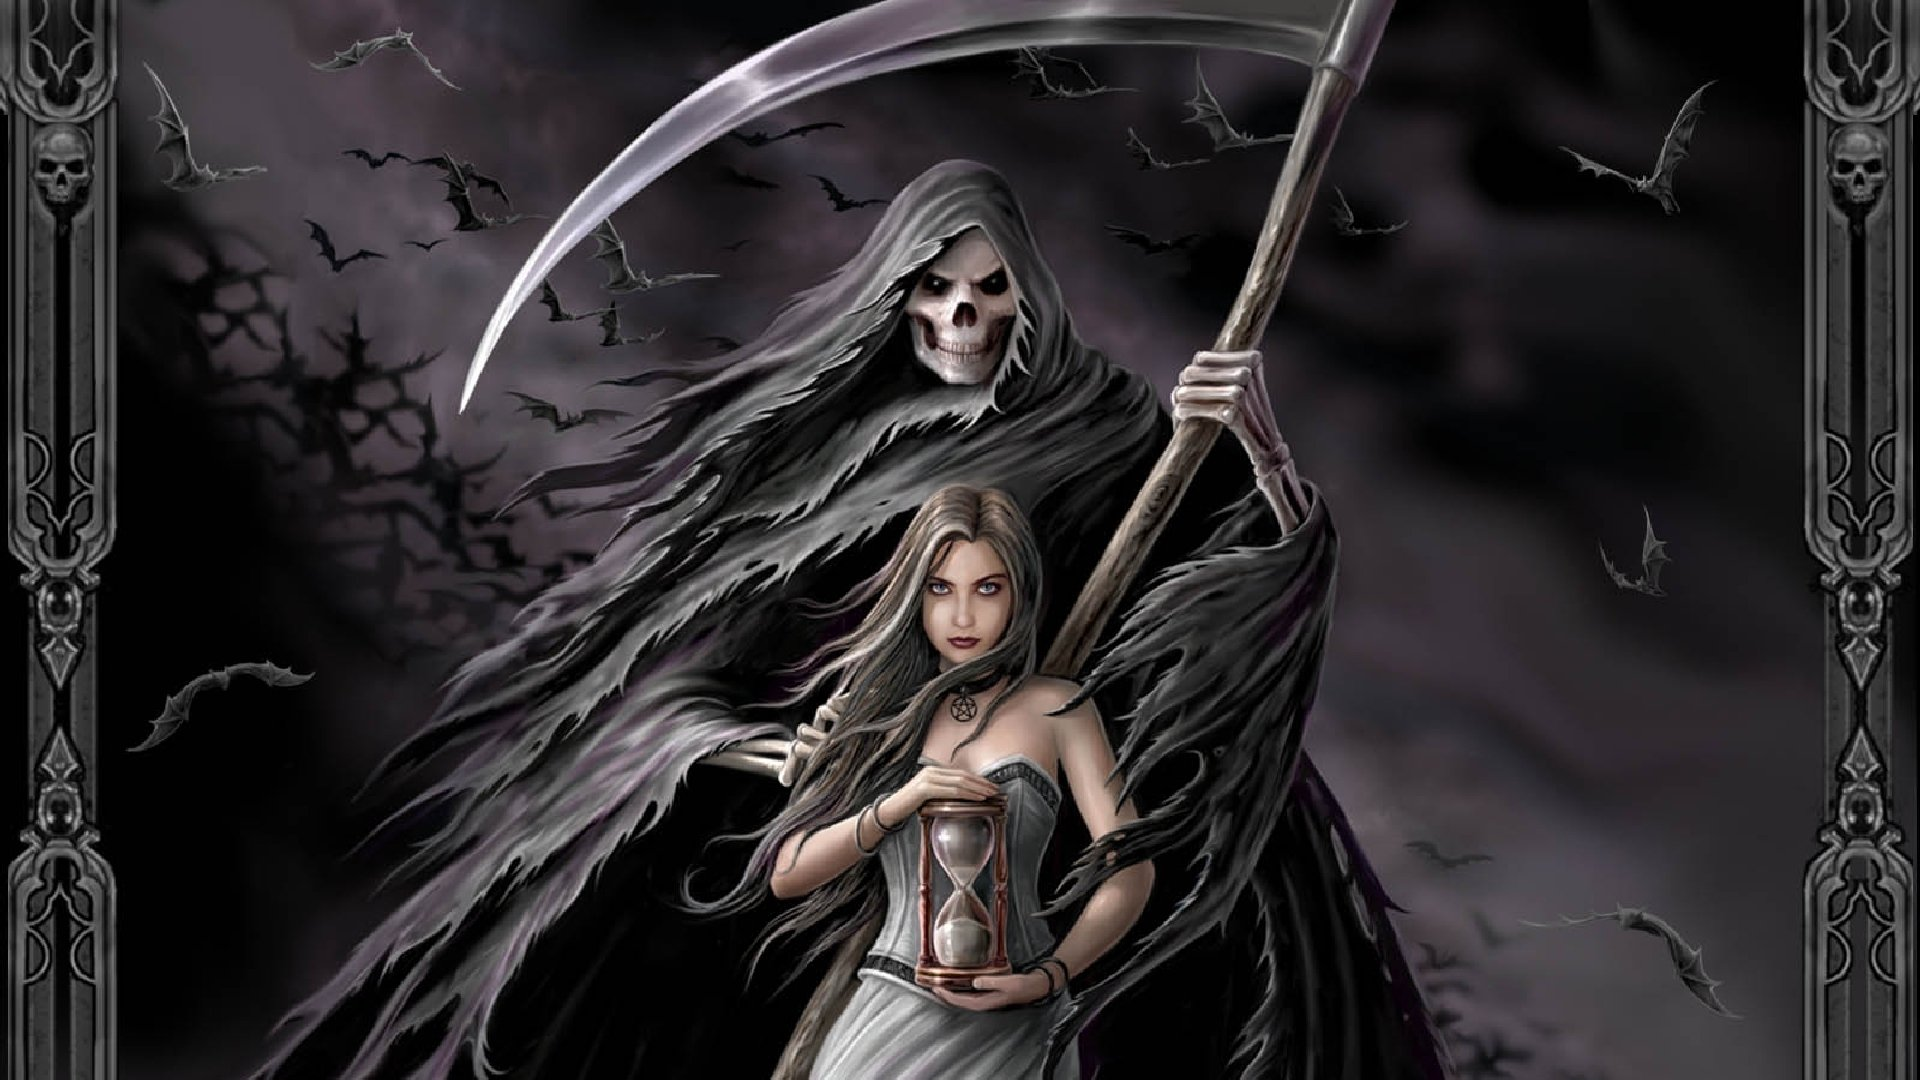 183 Grim Reaper Hd Wallpapers Background Images Wallpaper Abyss